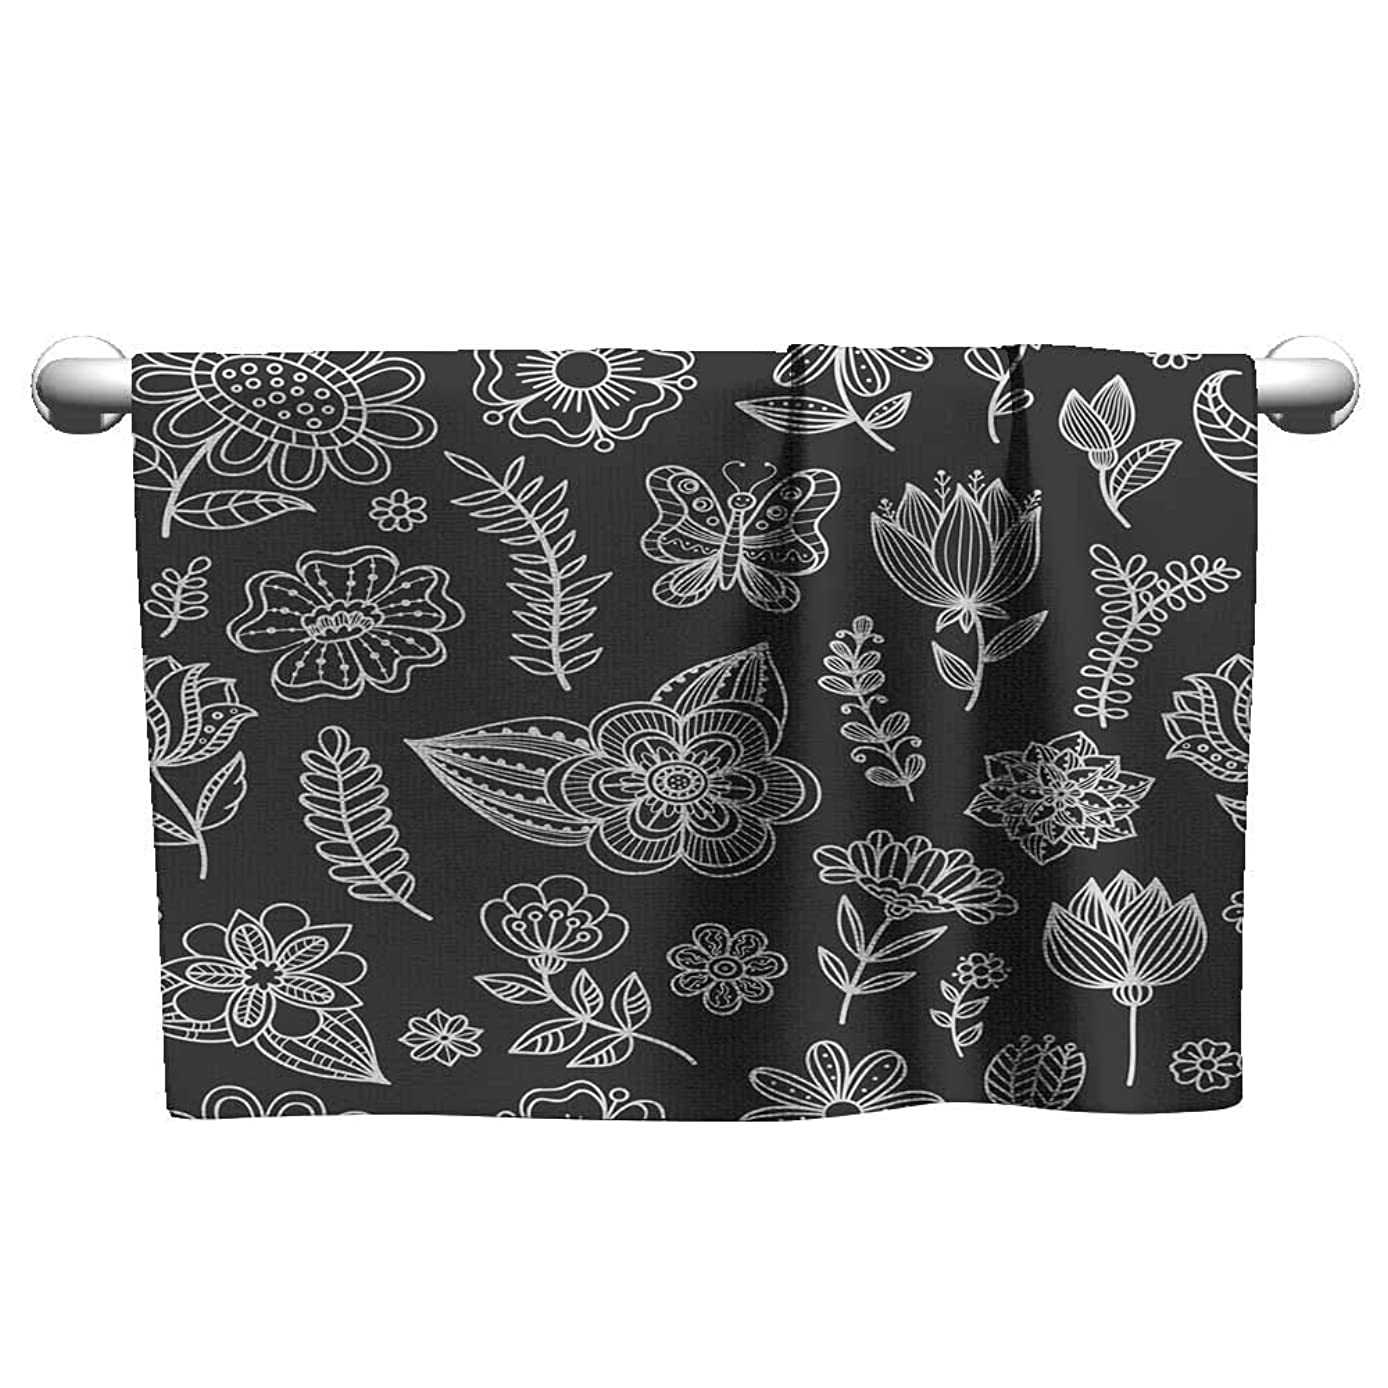 Suchashome a Towel Seamless Pattern with Chalk Flowers Hand Towels Scrub Towel 20 x 40 Inch